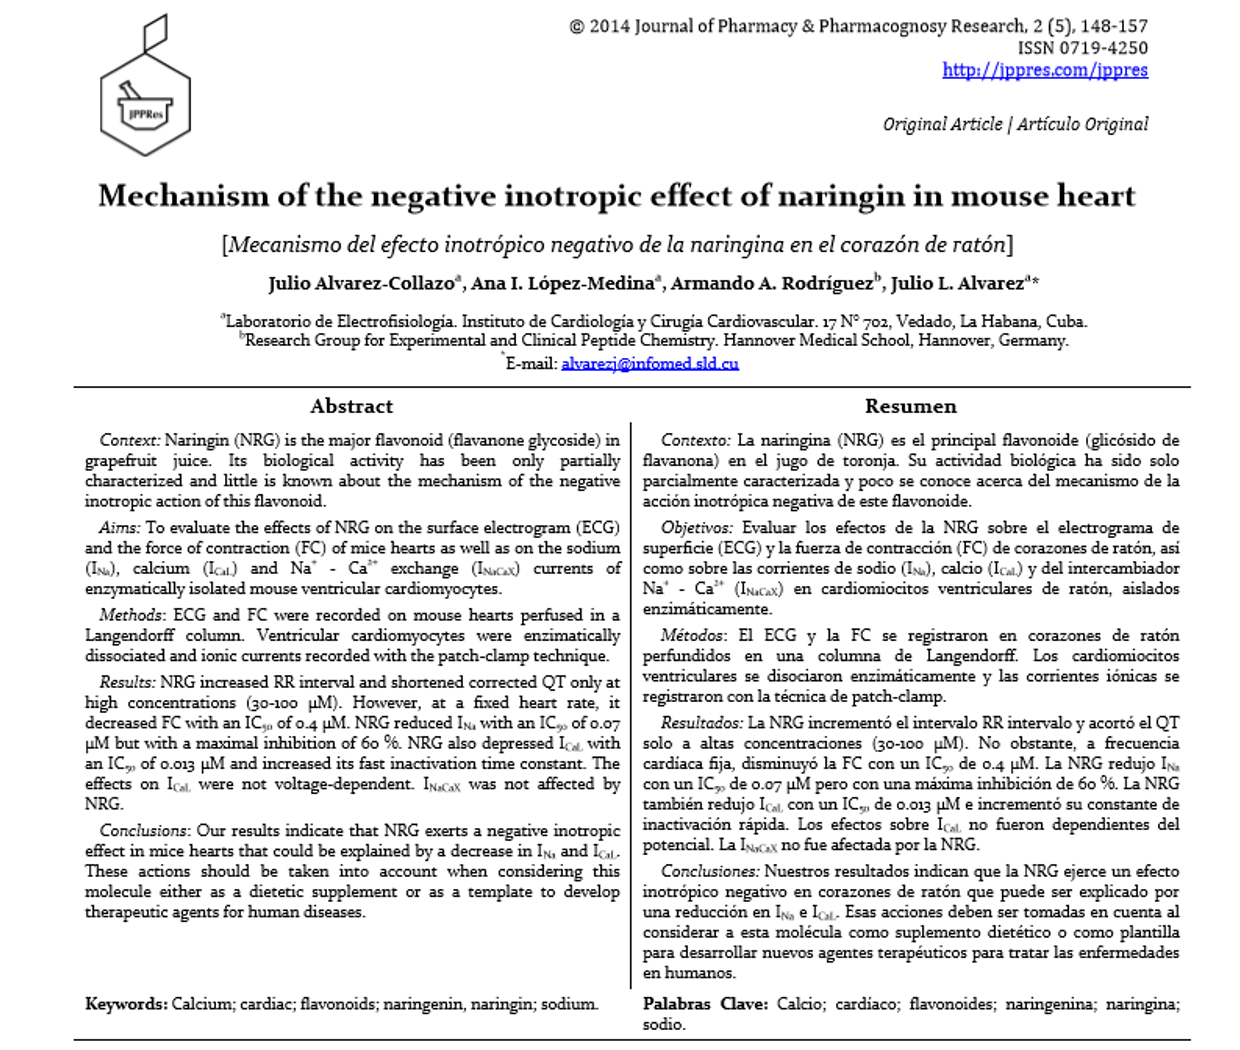 Julio Alvarez-Collazo, Ana I. López-Medina, Armando A. Rodríguez, Julio L. Alvarez (2014) Mechanism of the negative inotropic effect of naringin in mouse heart. |[Mecanismo del efecto inotrópico negativo de la naringina en el corazón de ratón]. J Pharm Pharmacogn Res 2(5): 148-157. http://jppres.com/jppres/pdf/vol2/jppres14.046_2.5.148.pdf